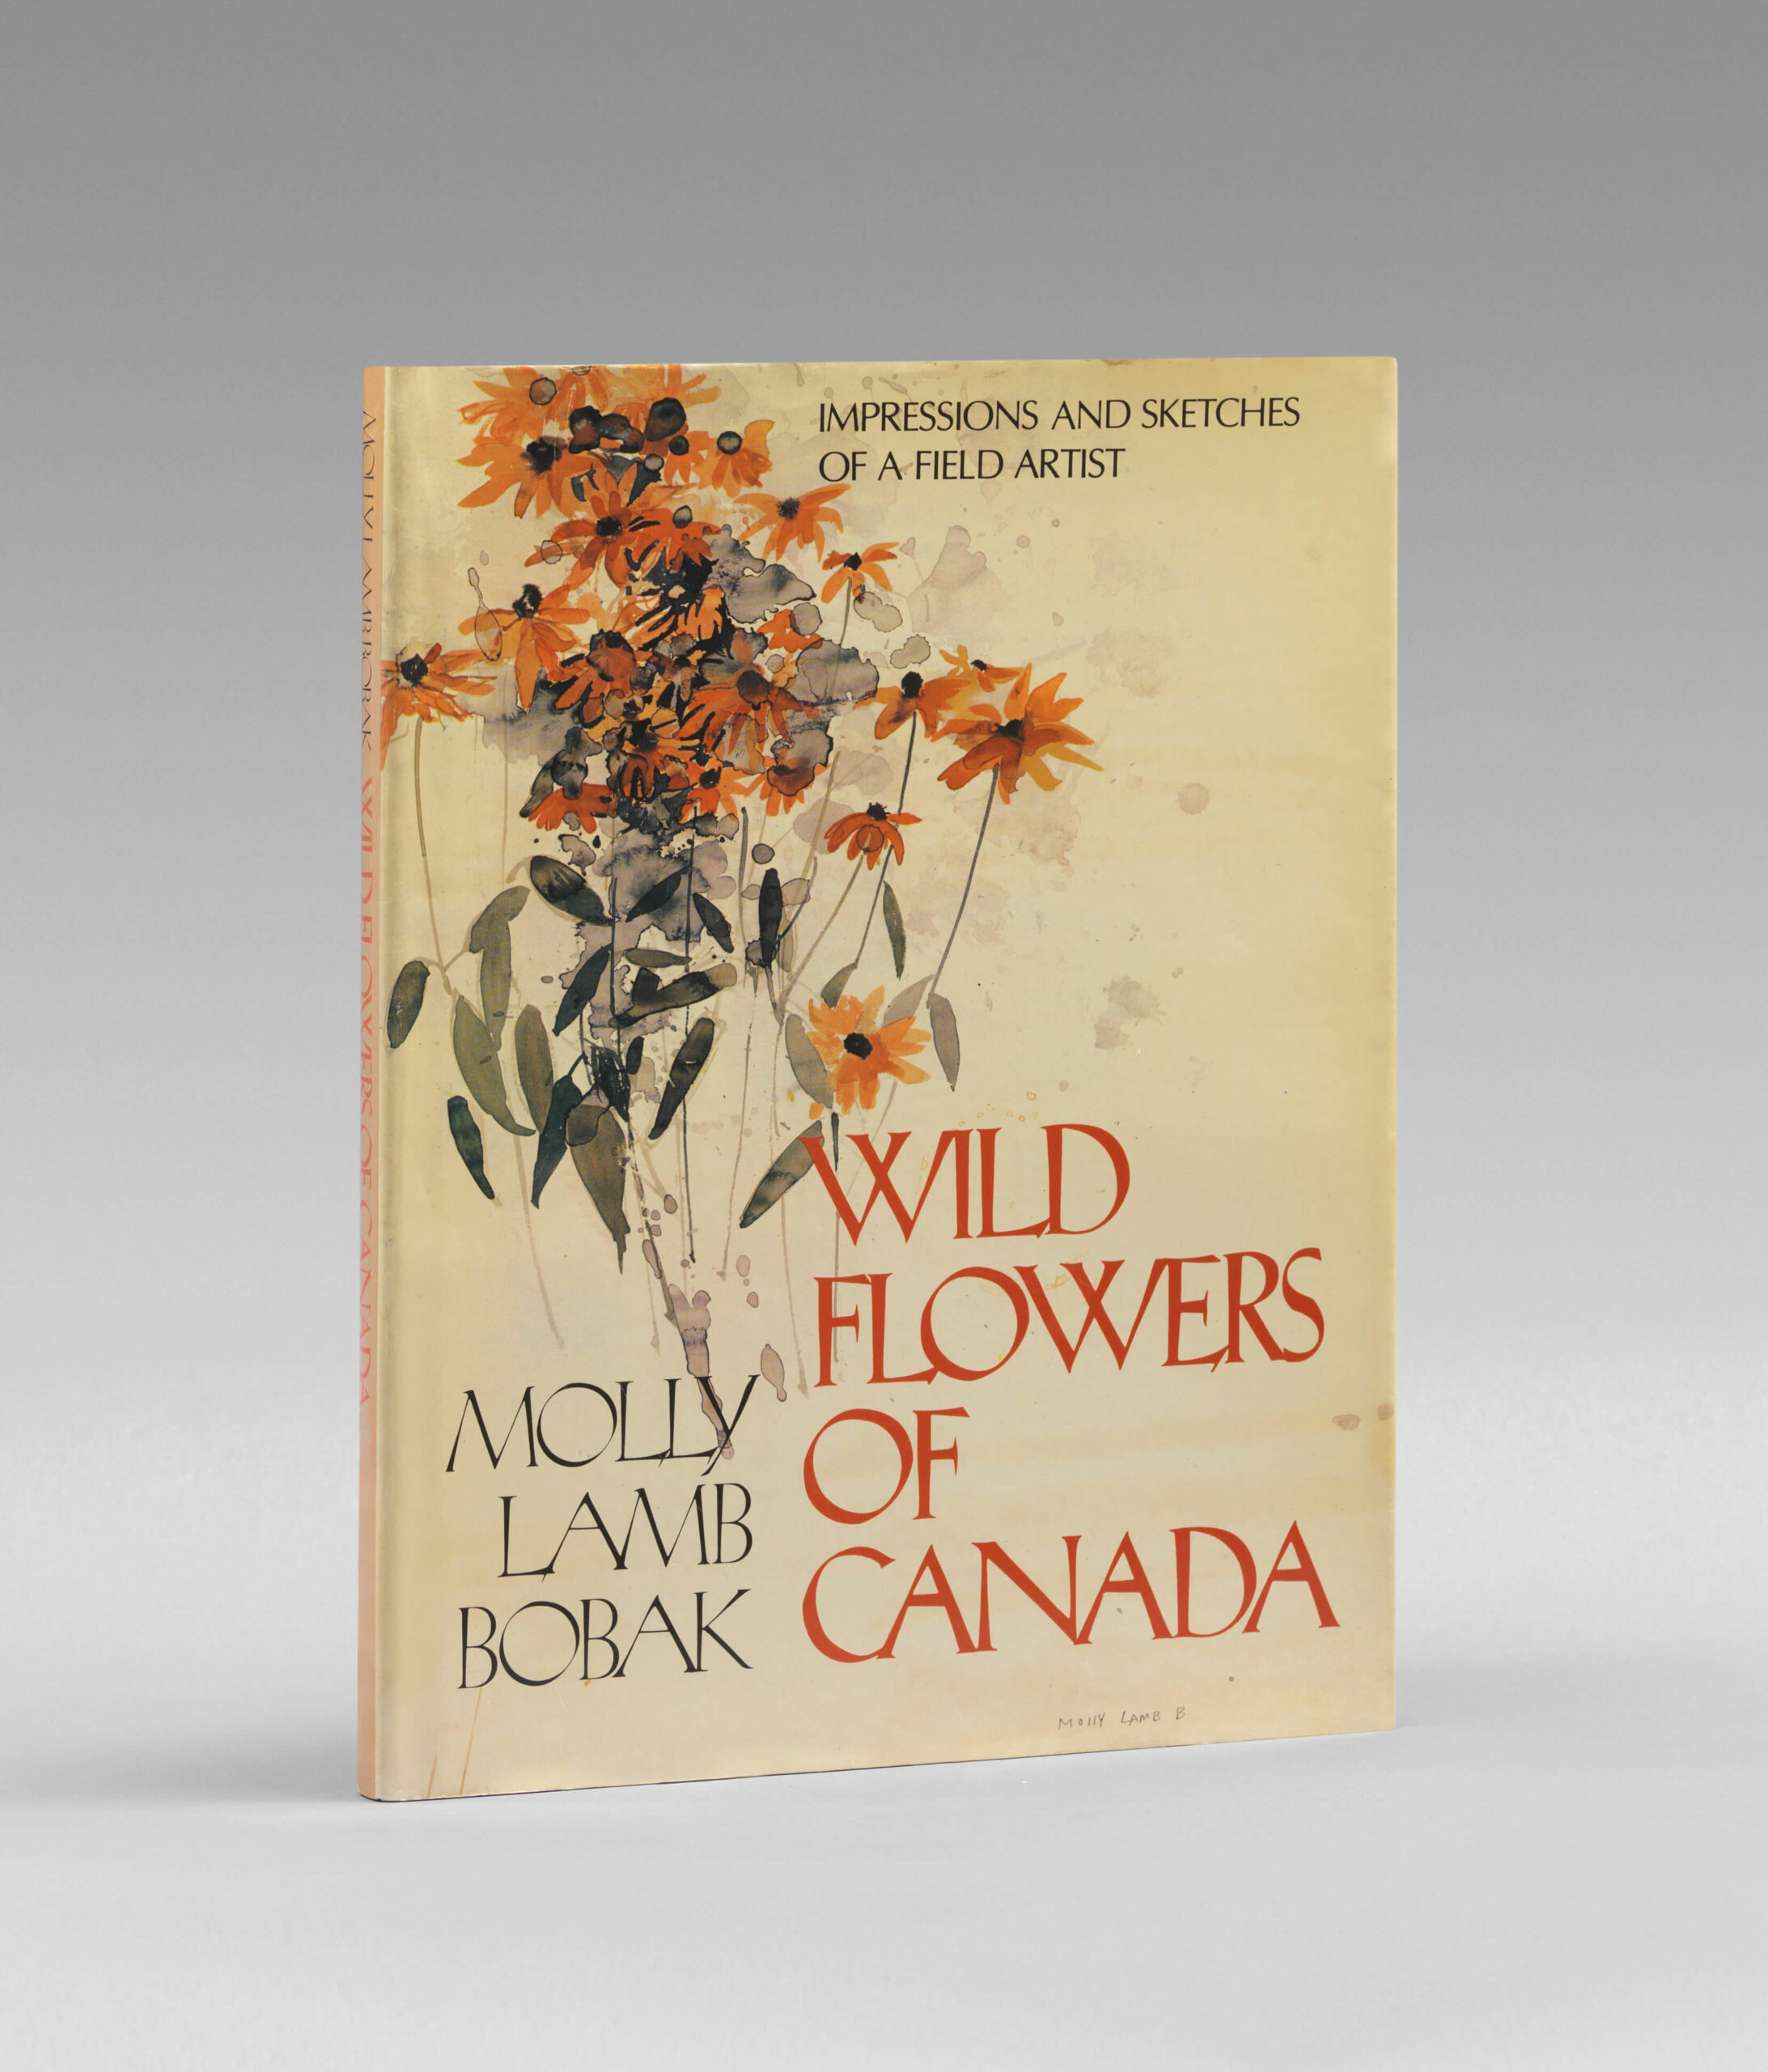 Wild Flowers of Canada: Impressions and Sketches of a Field Artist